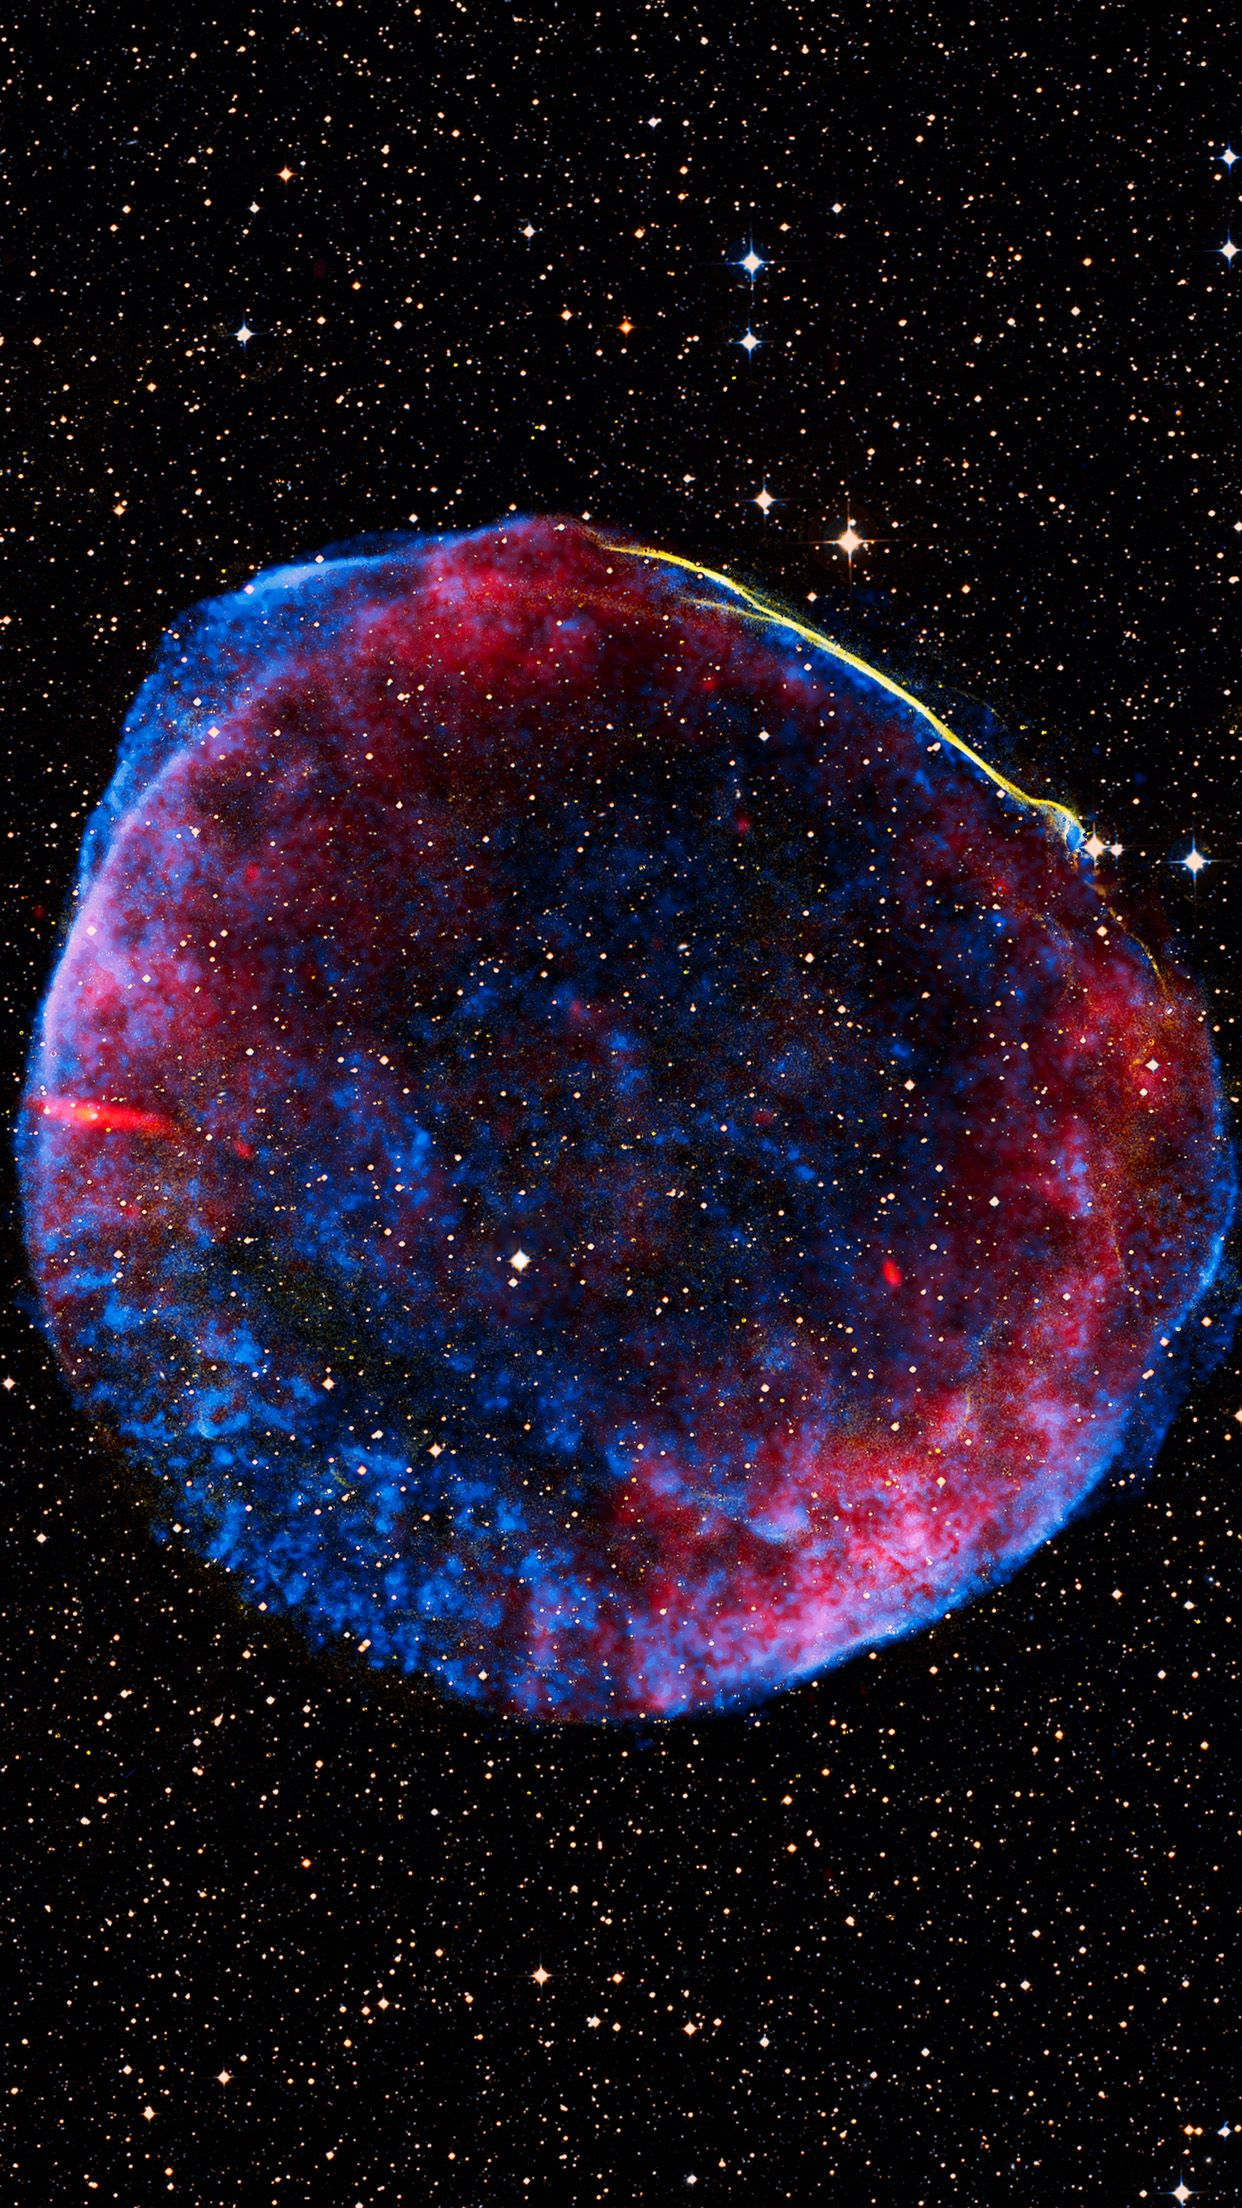 This remarkable image was created from pictures taken by different telescopes in space and on the ground. It shows the thousand-year-old remnant of the brilliant #SN1006 #supernova, as seen in radio (red), X-ray (blue) and visible light (yellow).